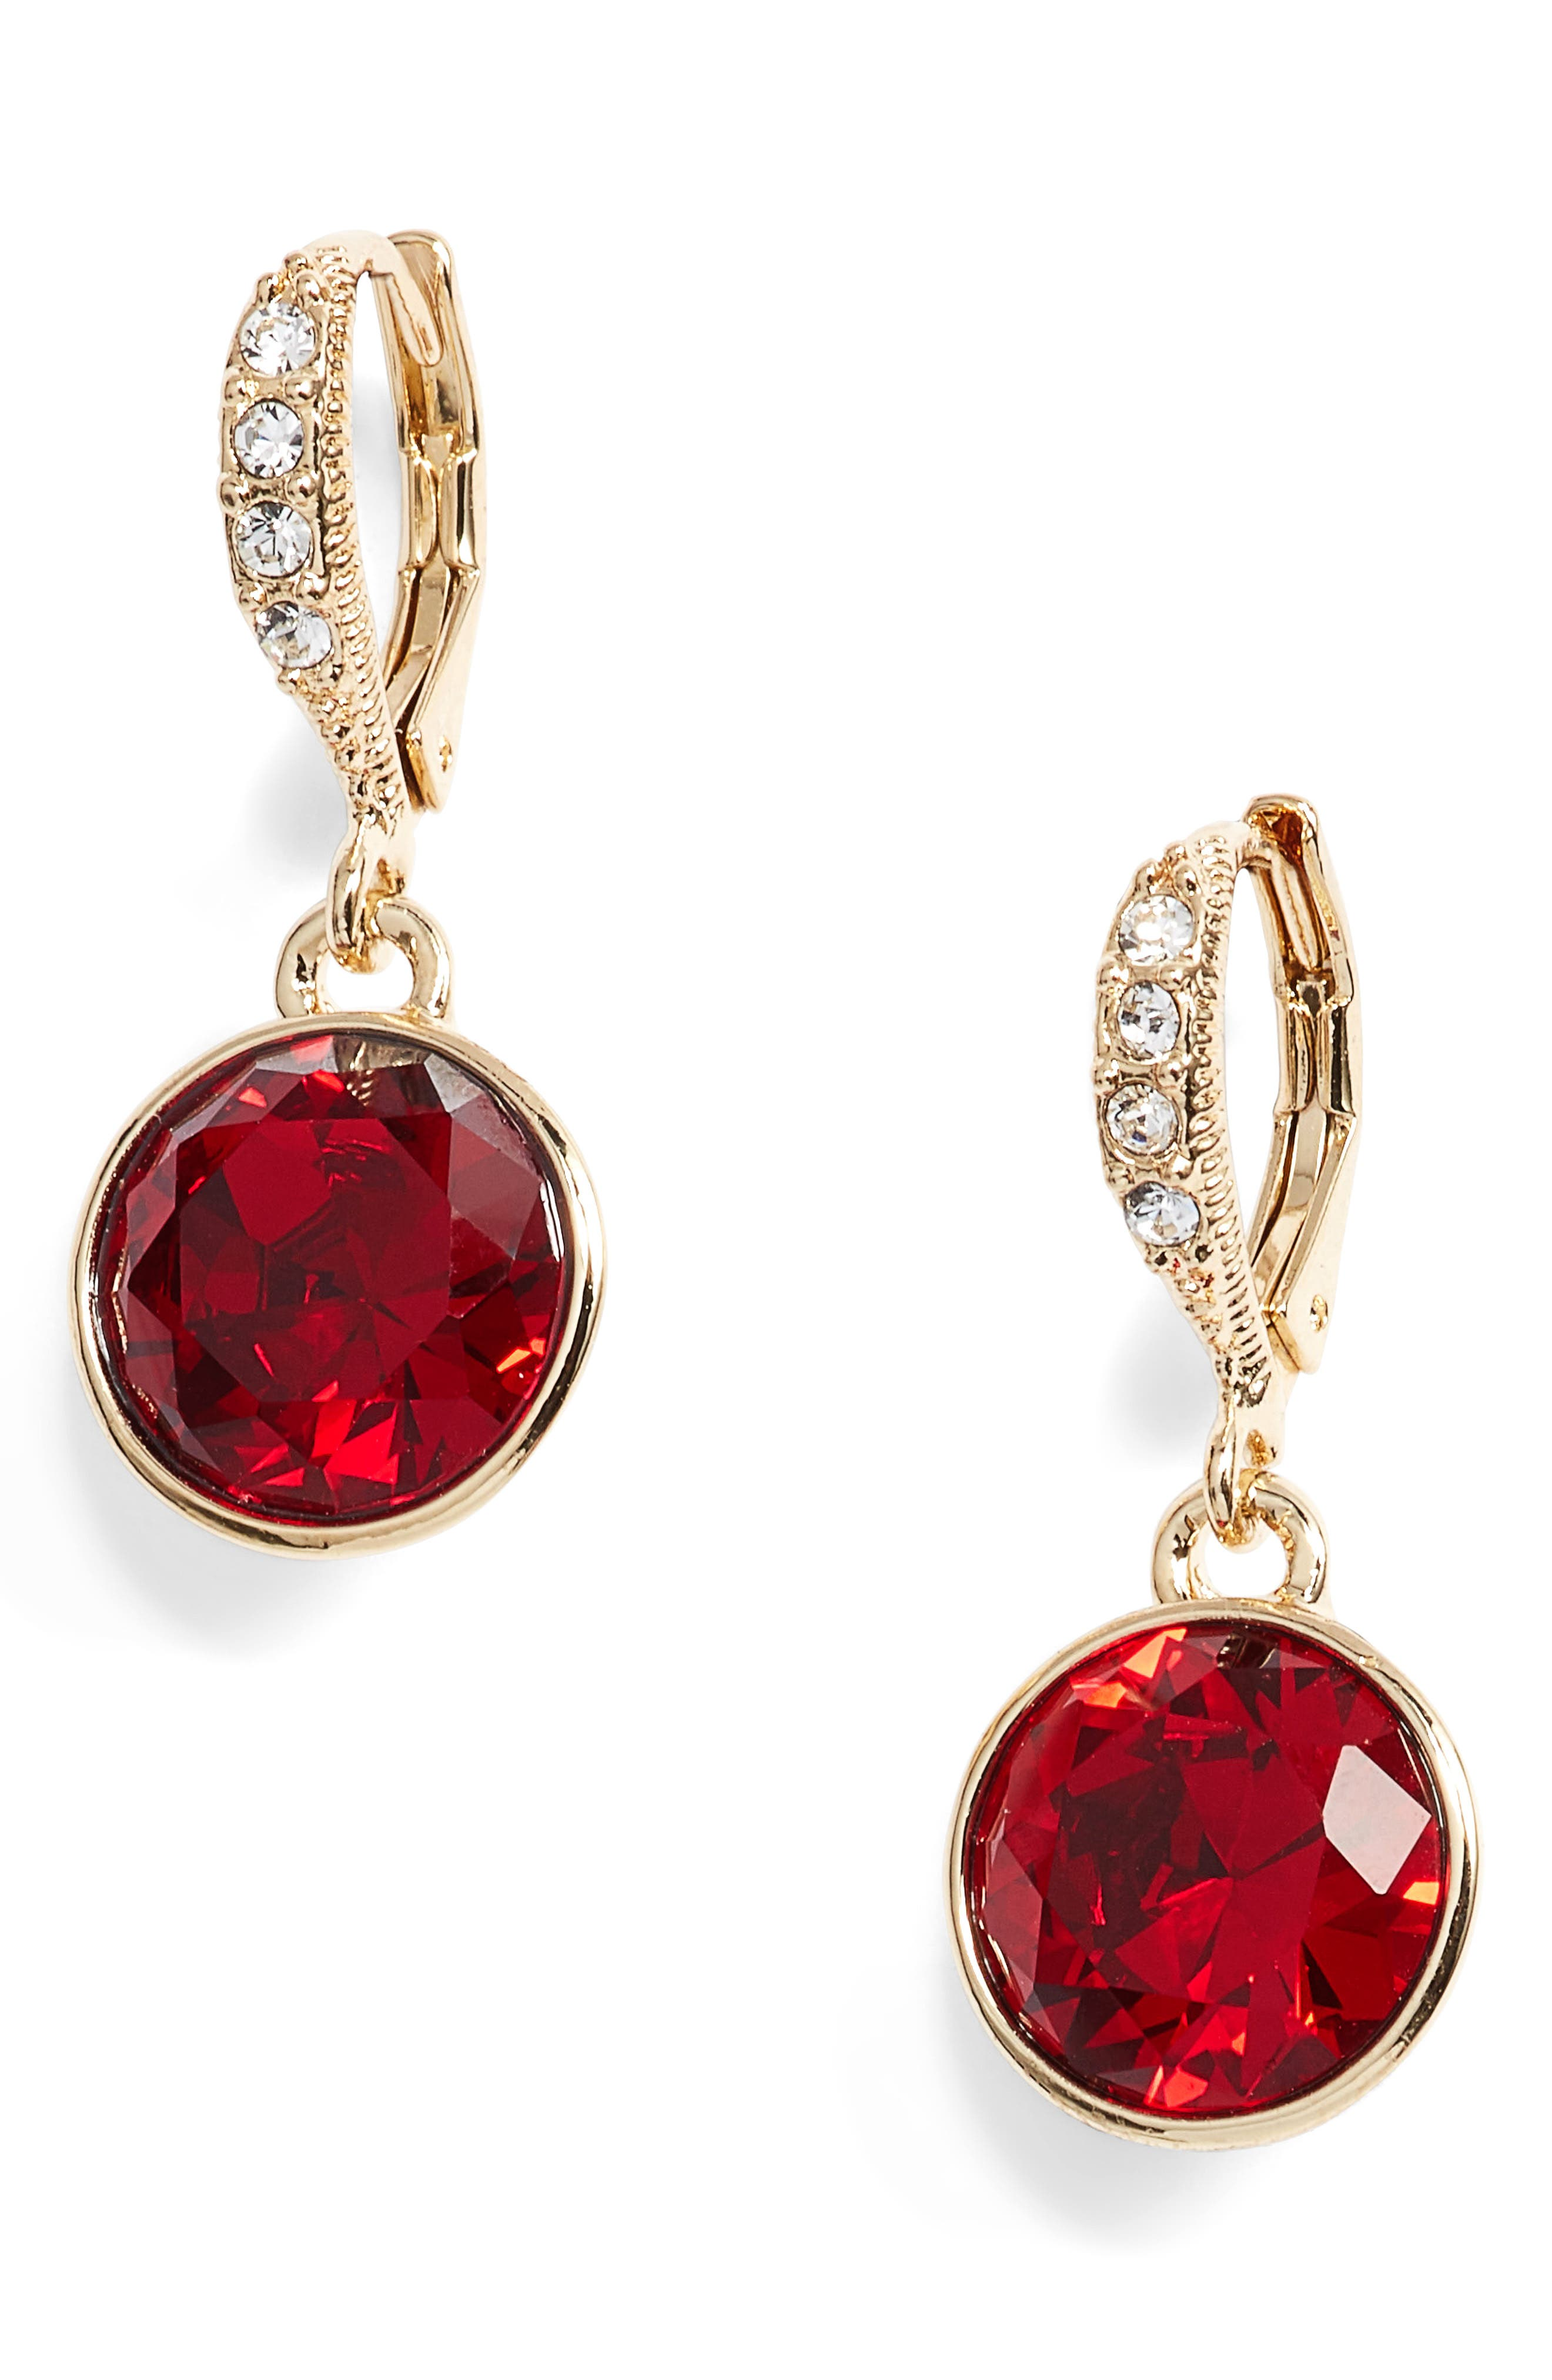 Givenchy Round Drop Earrings